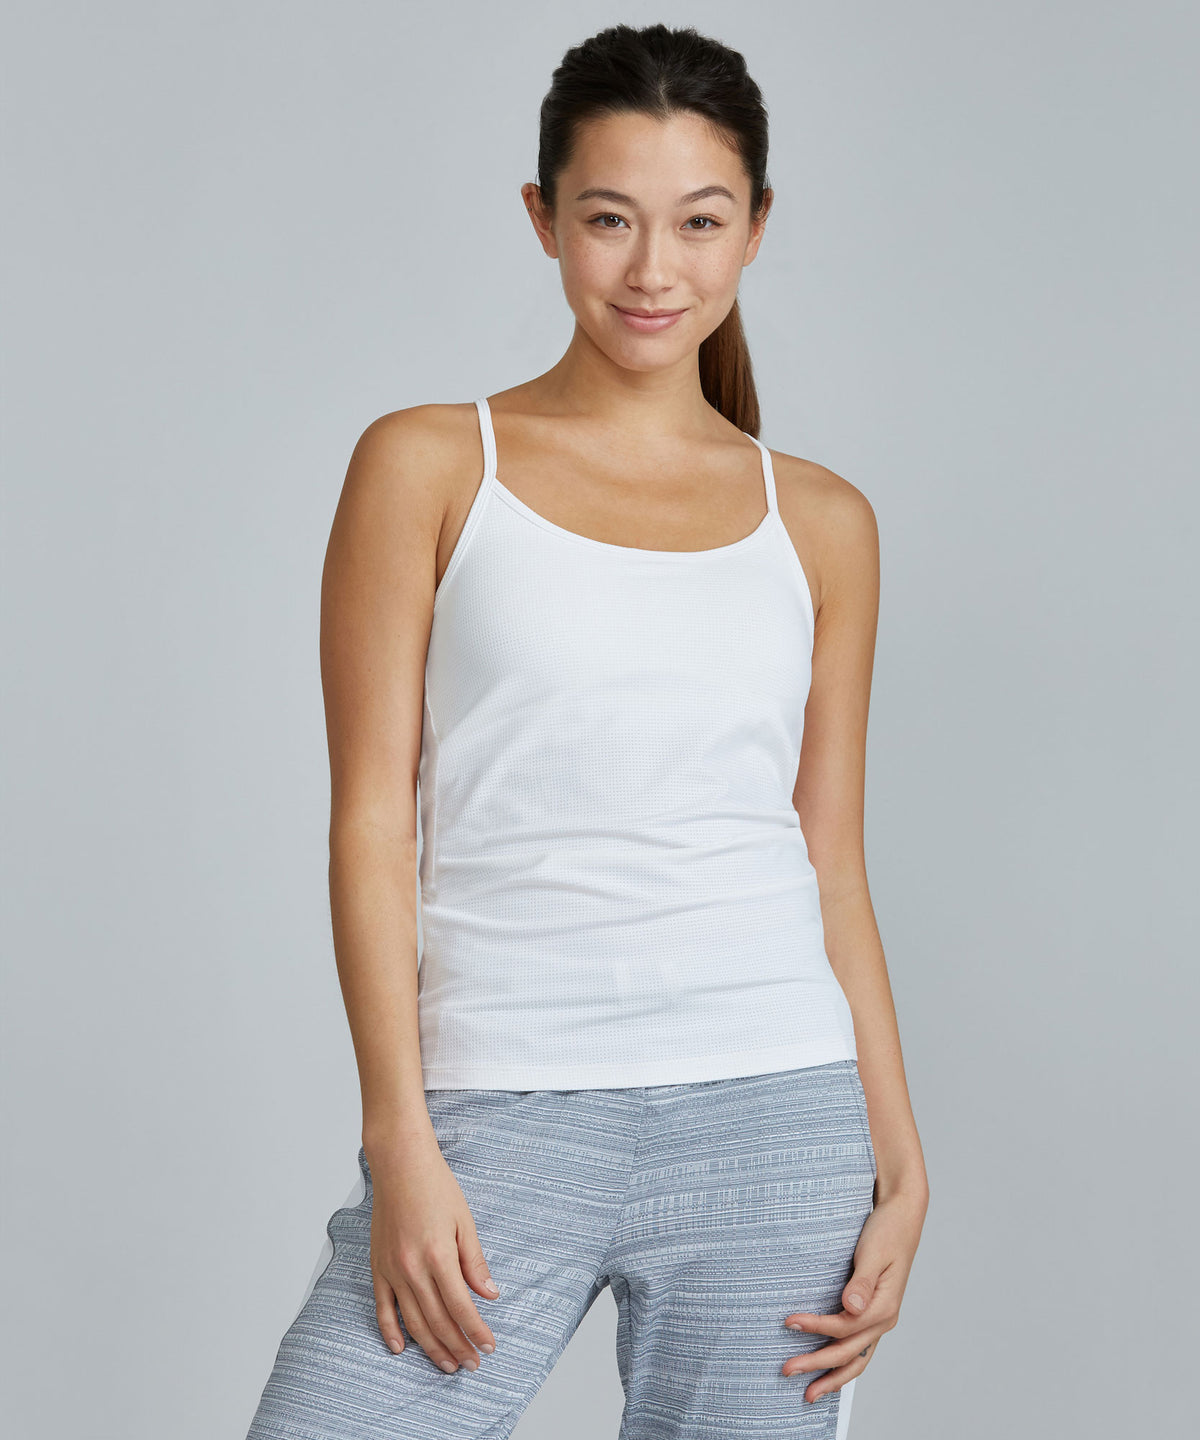 Perforated Tank - White White Perforated Tank - Women's Activewear Tank Top by PRISMSPORT